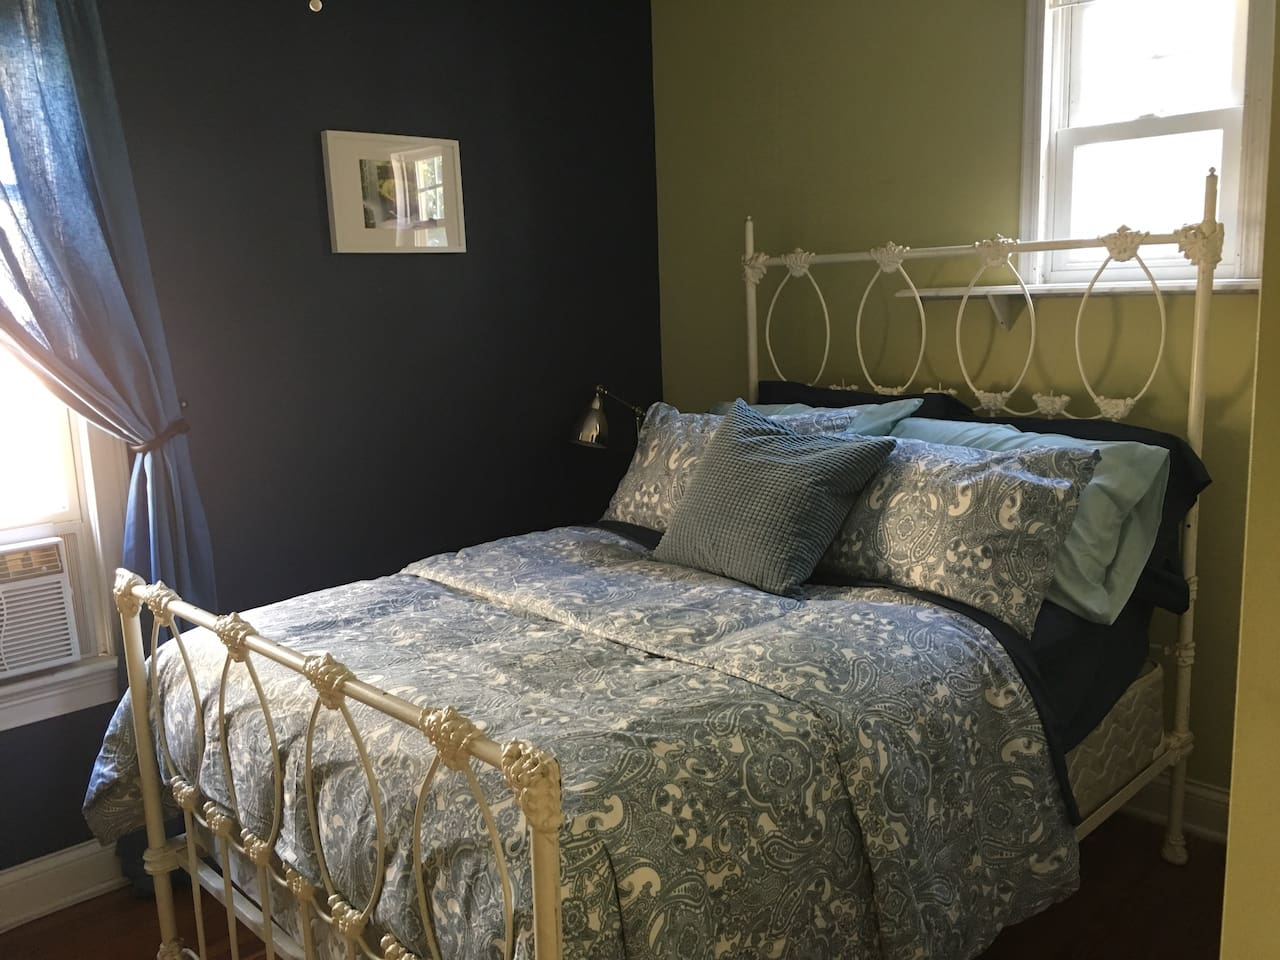 Antique bed has a double size spring mattress and assortment of pillows for comfort. Pillows include memory foam, feather and down alternative.